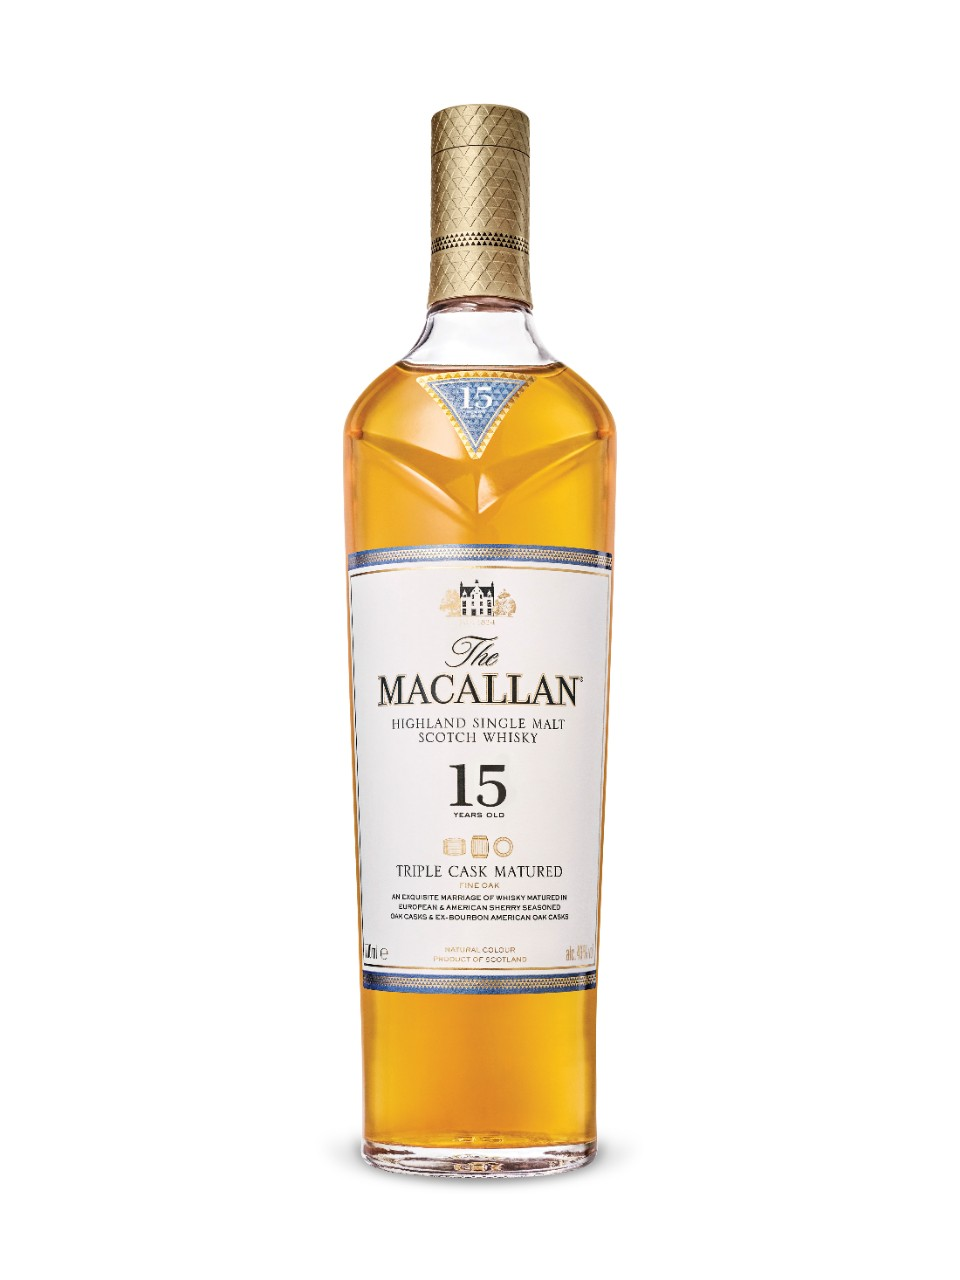 Image for The Macallan 15 Year Old Highland Single Malt Scotch Whisky Triple Cask from LCBO